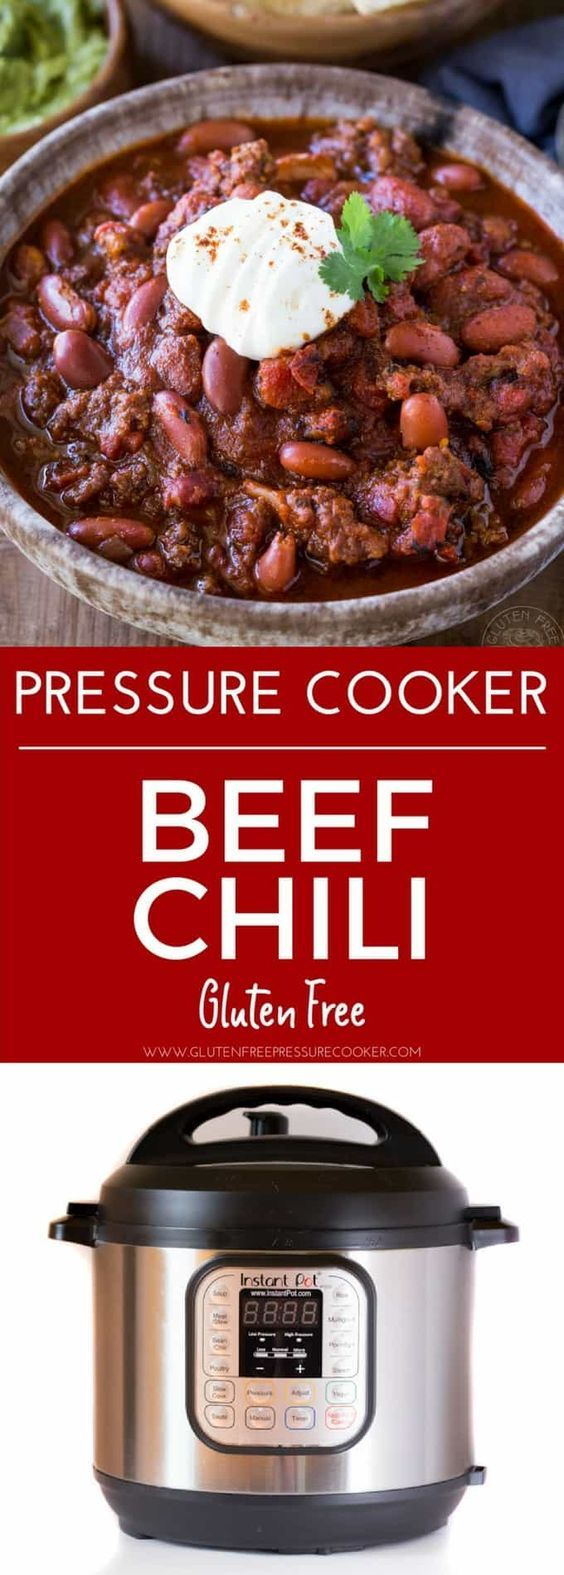 BEST Instant Pot Chili!! My recipe has been tested & tweaked to create a delicious pressure cooker ground beef chili recipe you'll LOVE! It's gluten free. Pressure cooker recipe for ground beef chili, Texas style Chili con carne #instantpot #instapot #texaschili #chili #groundbeef #beef #groundbeefchili #pressurecooker #pressurecooking #glutenfreepressurecooker